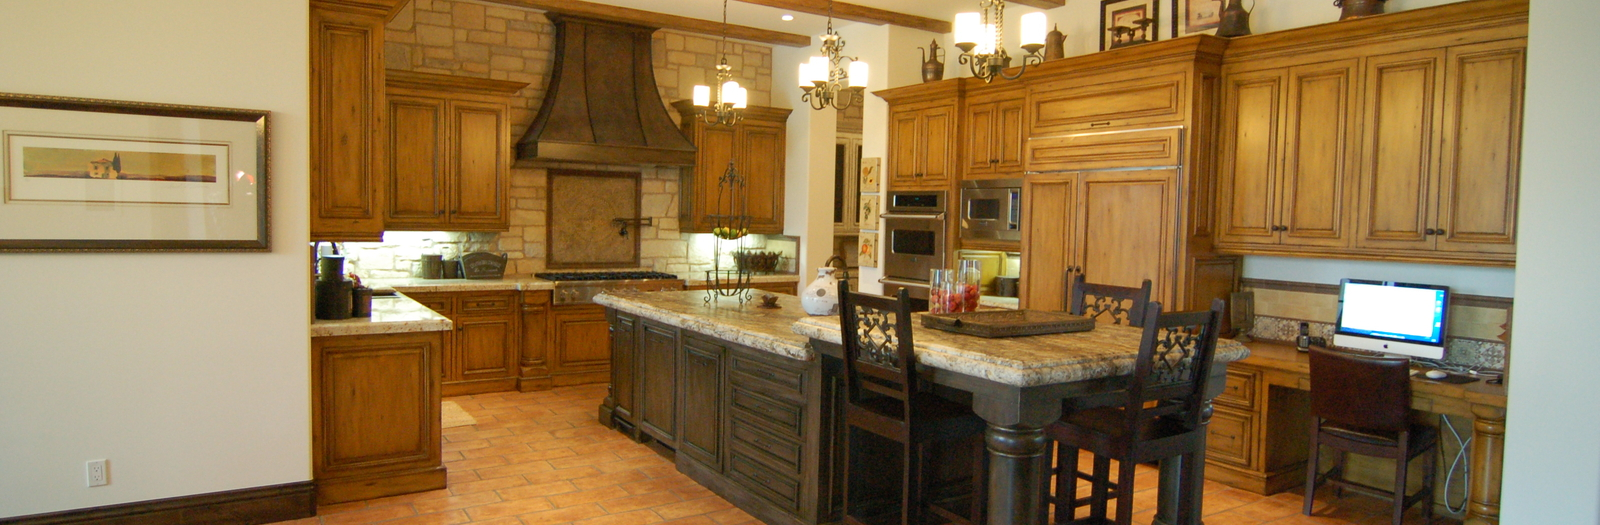 Lodge Kitchen with large dark wood island with bar seating